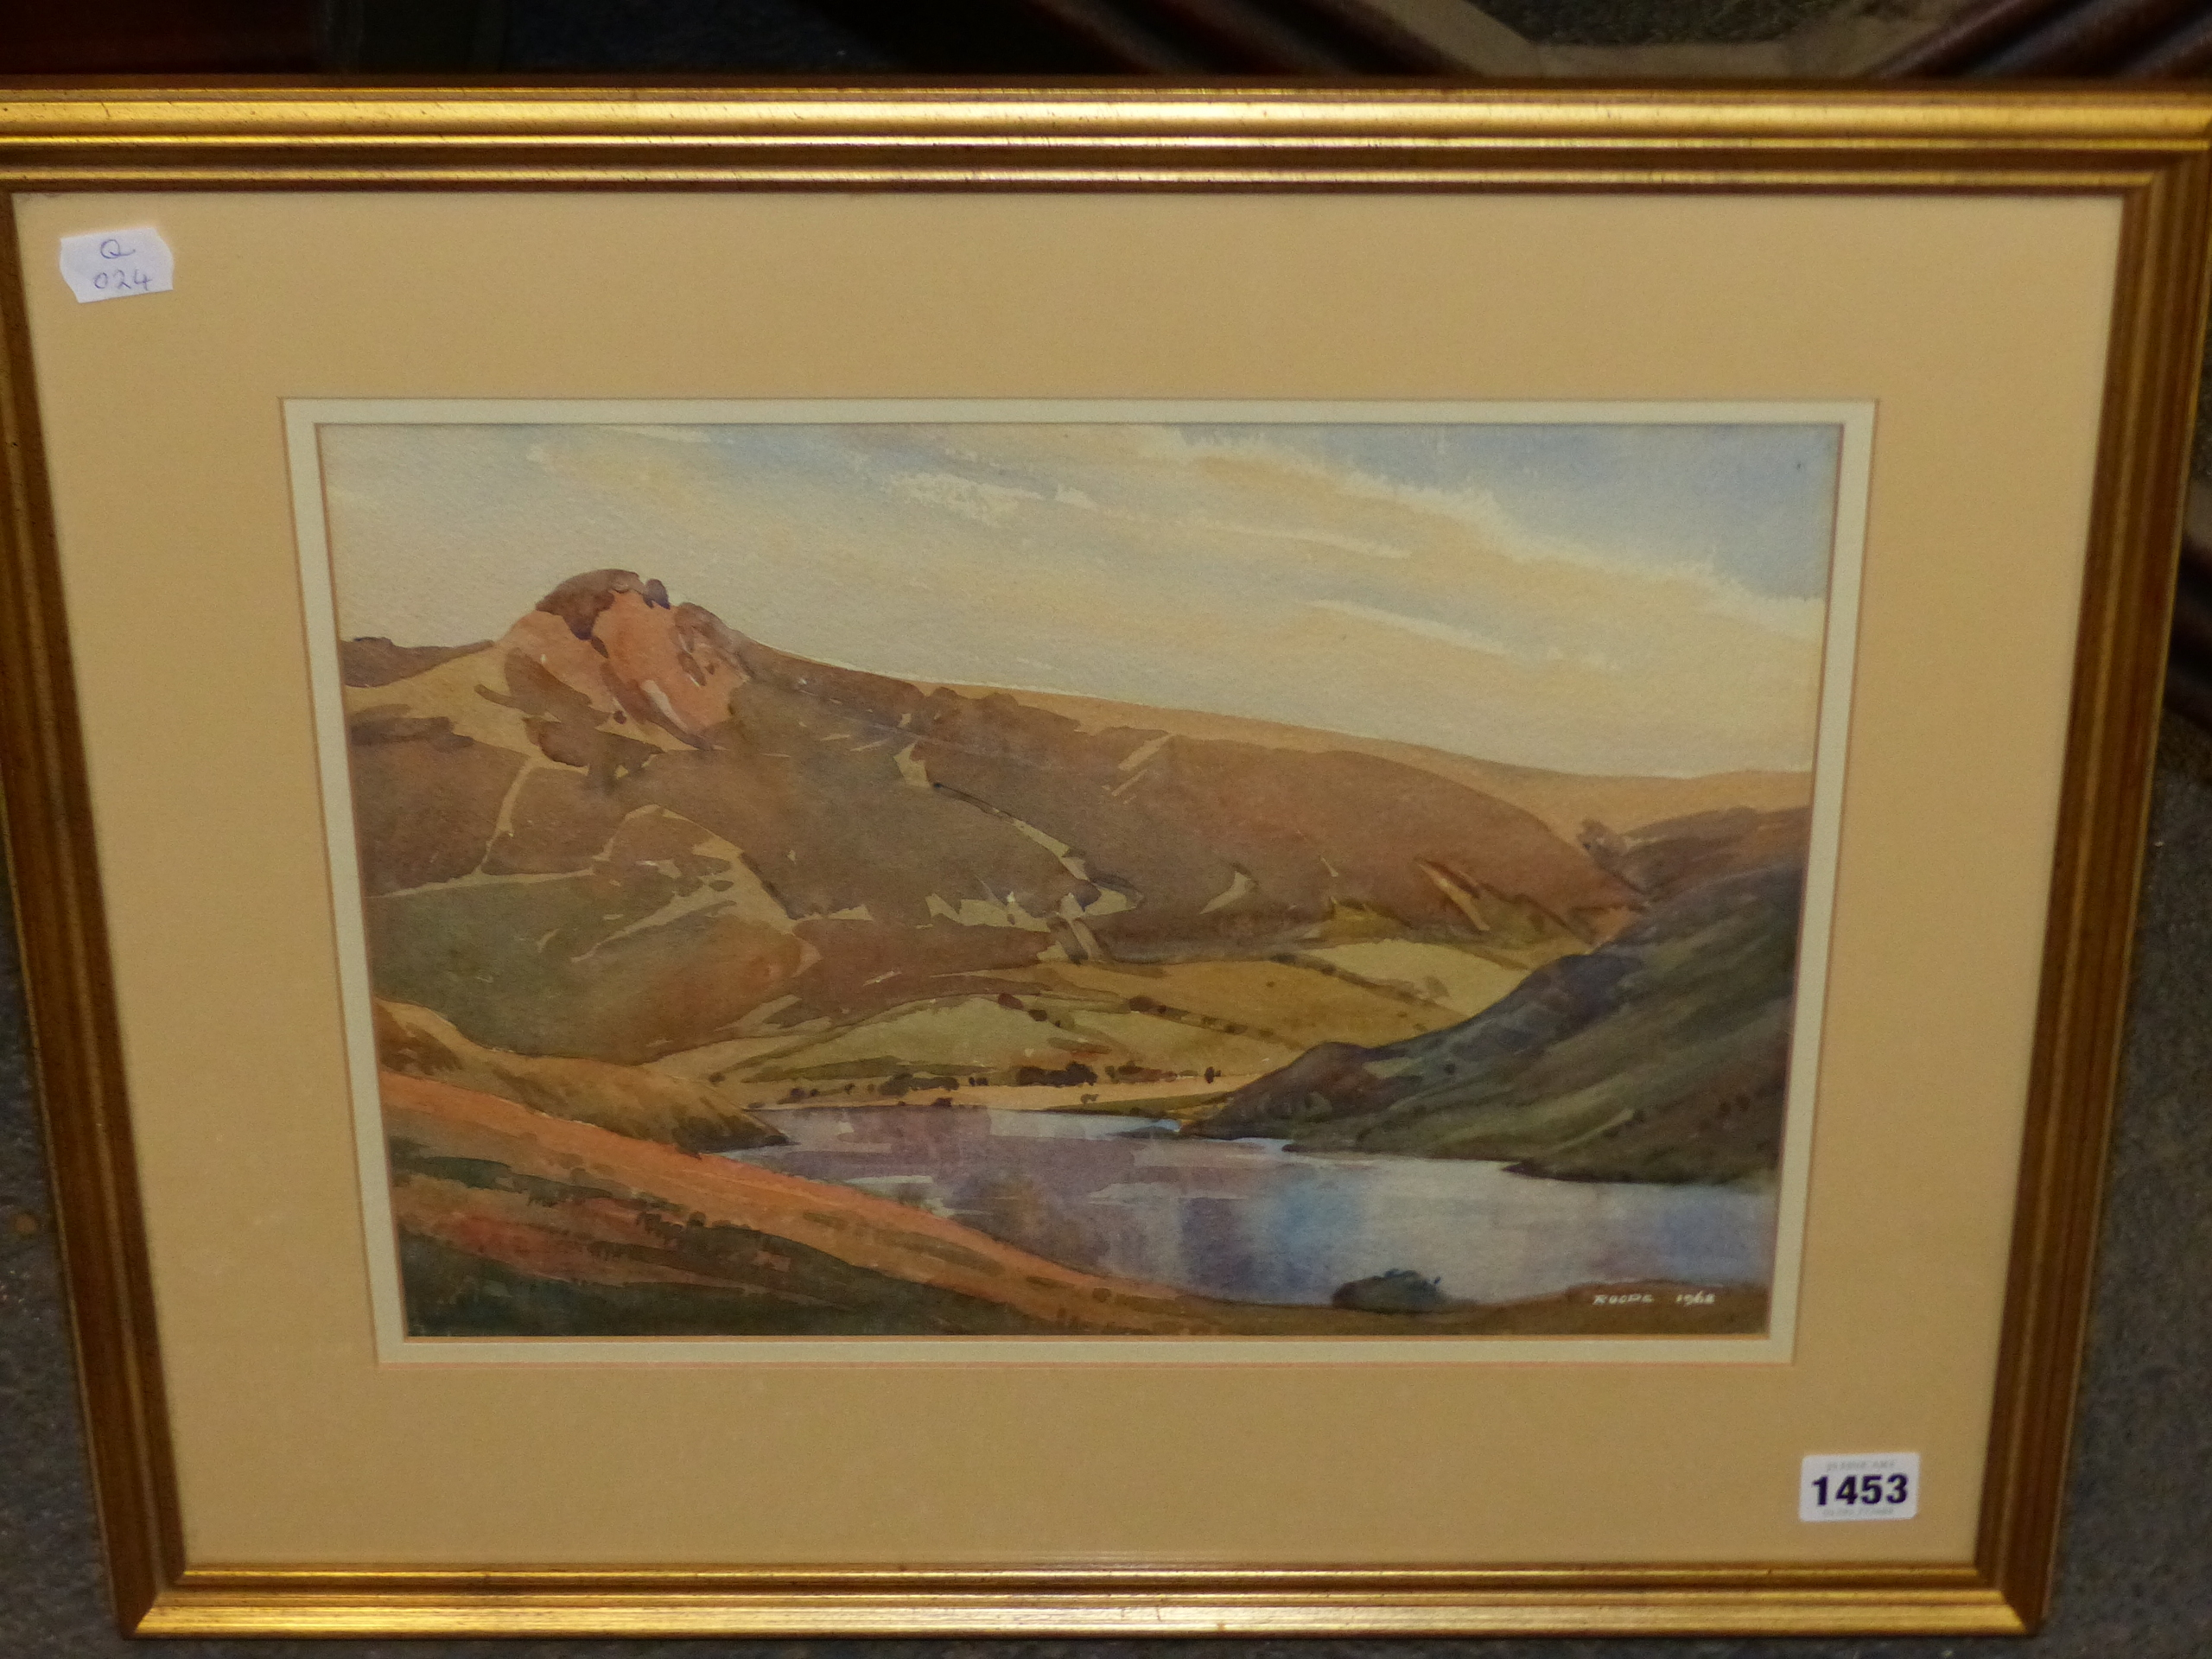 ROOPE? (20th CENTURY SCHOOL). A HIGHLAND LAKE LANDSCAPE, WATERCOLOUR, SIGNED AND DATED, 26 x 35cms. - Image 4 of 5